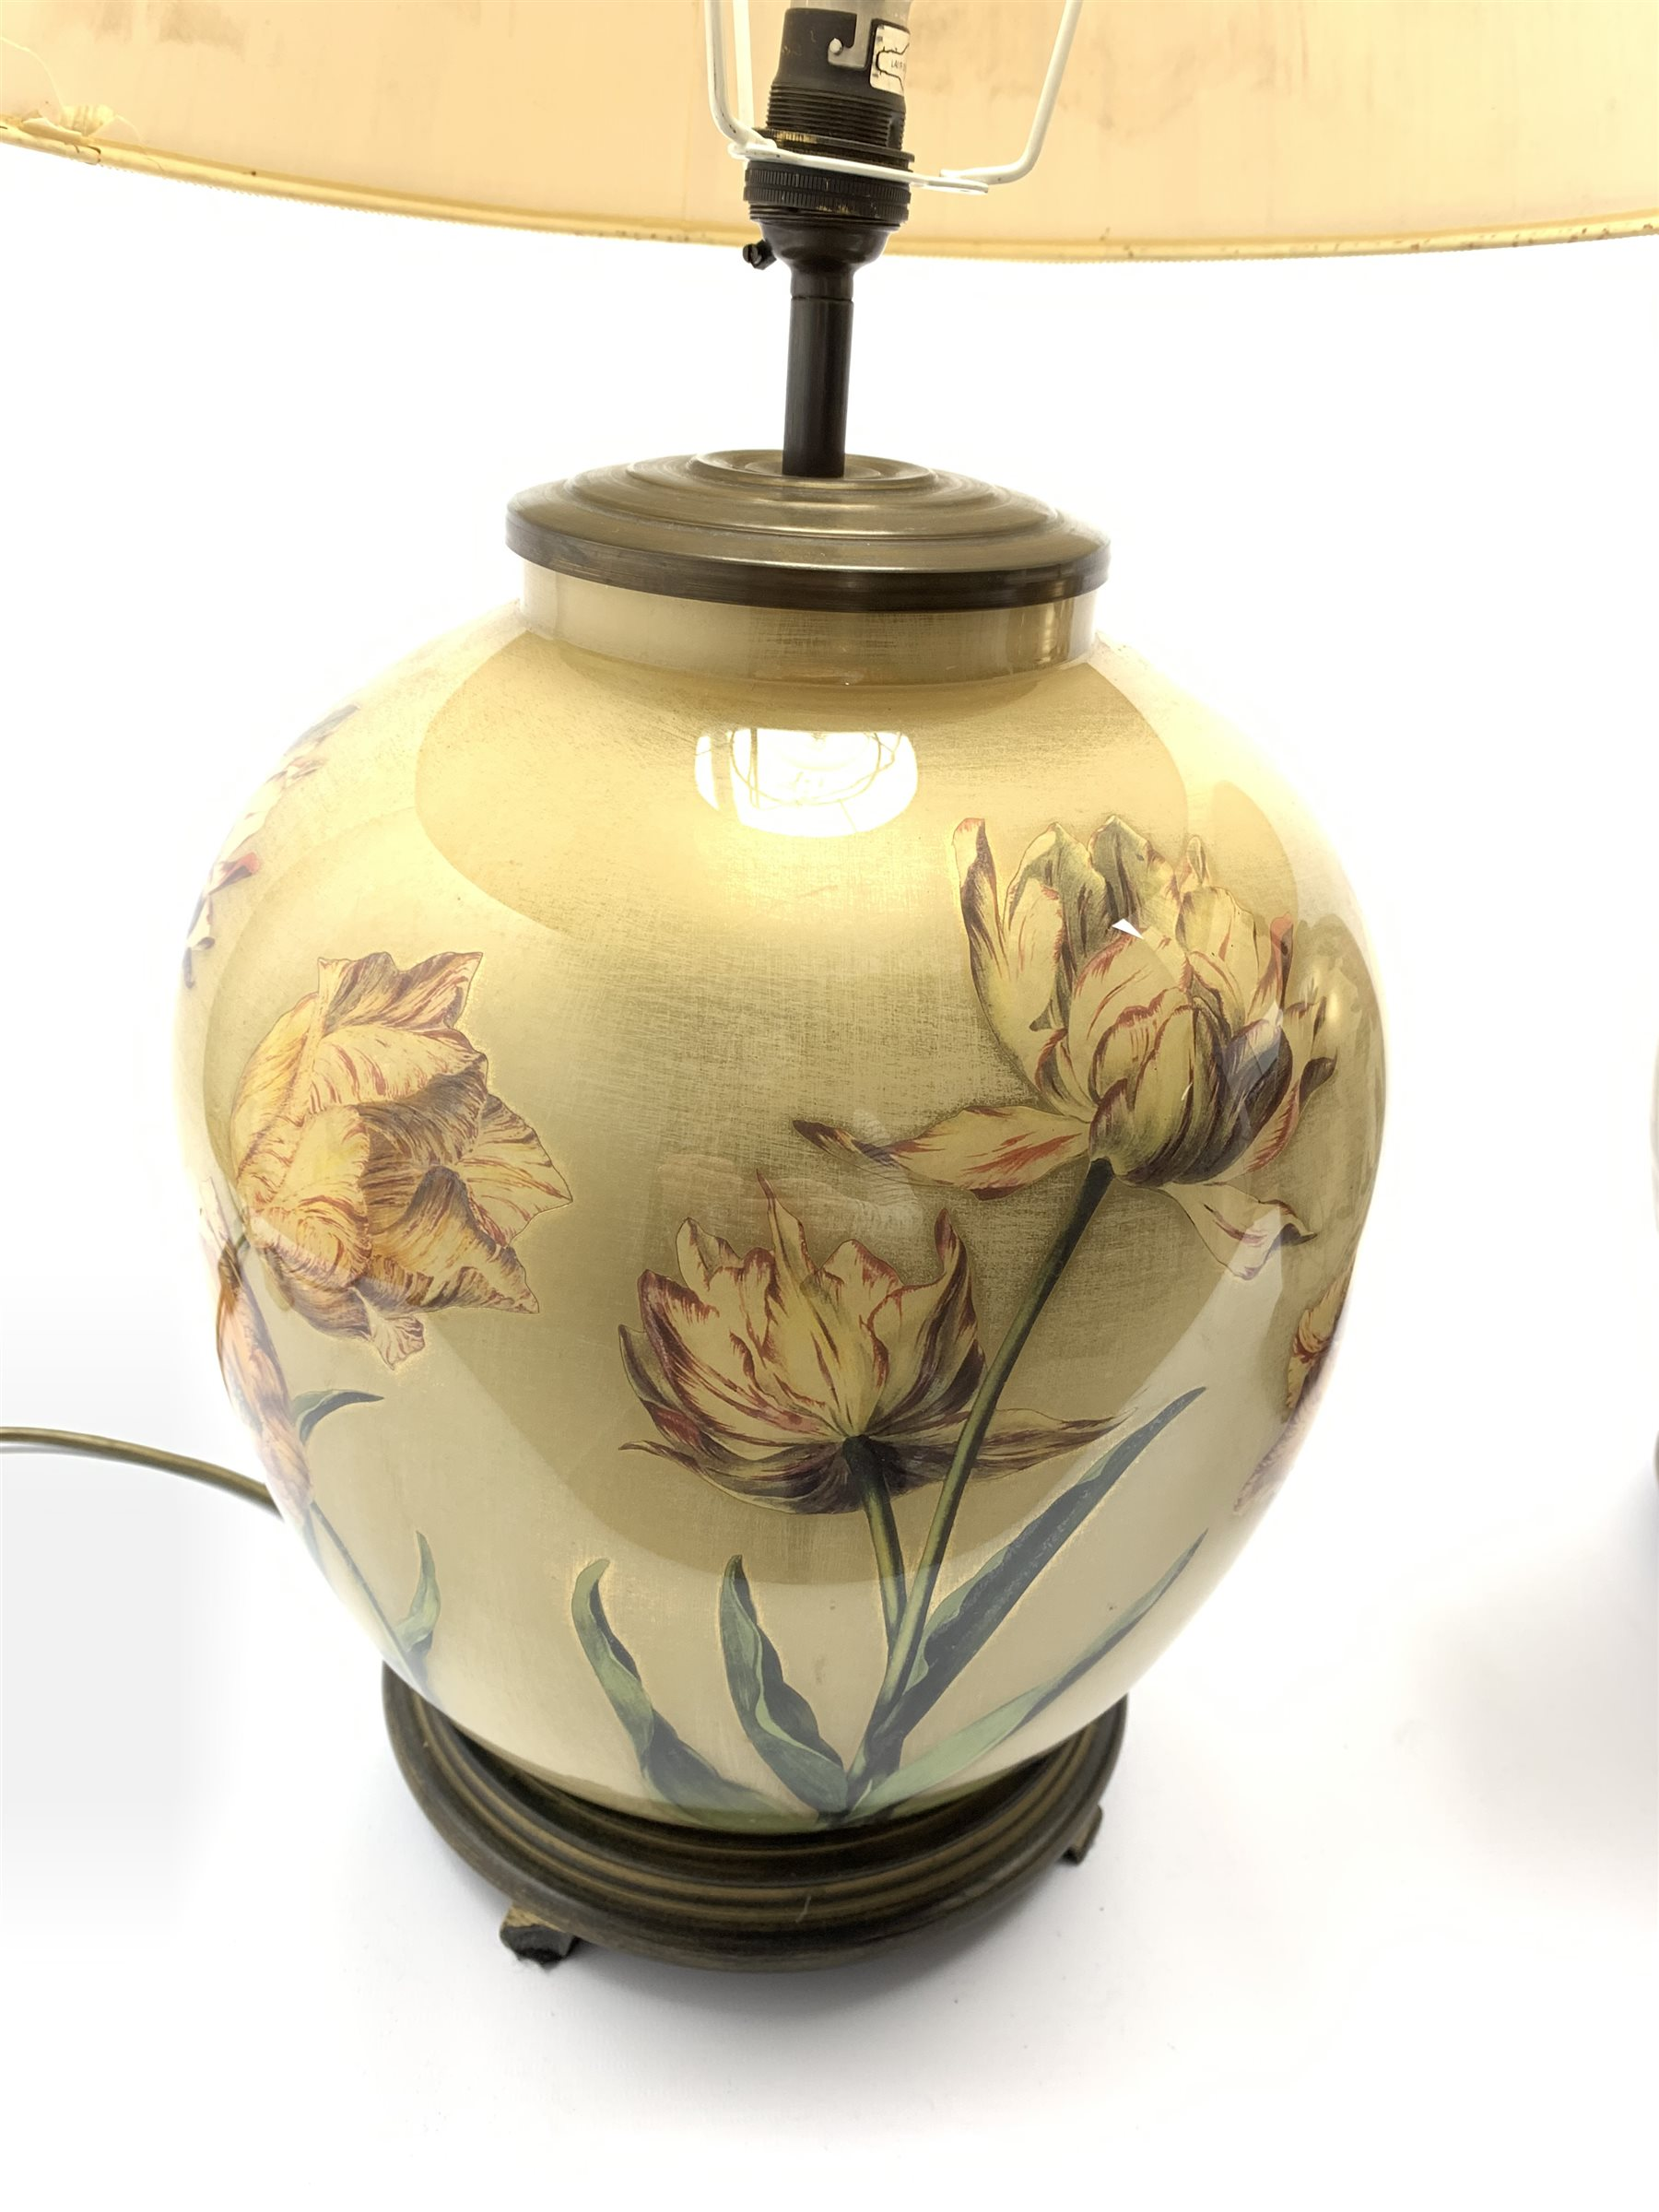 A near pair of glass table lamps having floral decoration on lustre ground, with pleated shades, H66 - Image 2 of 5